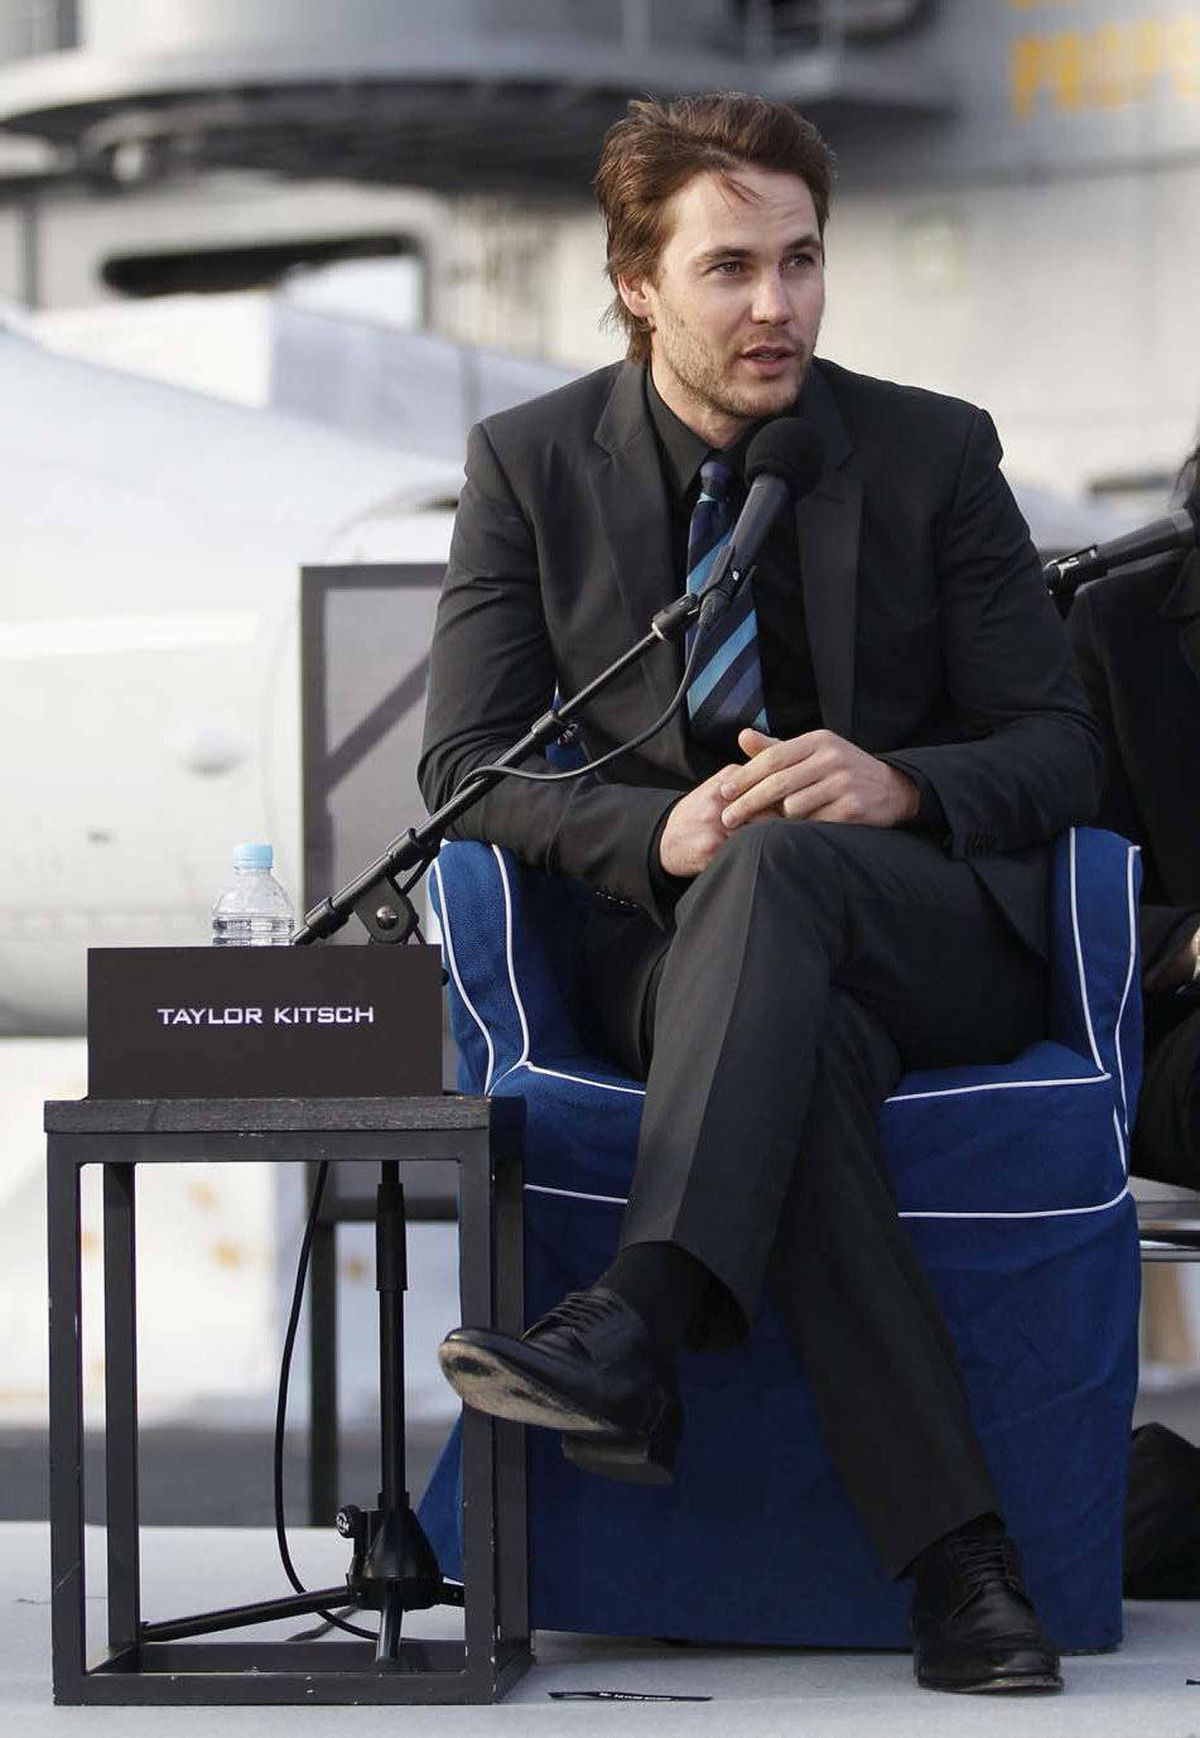 "Canadian actor Taylor Kitsch speaks during a news conference to promote the film ""Battleship"" atop the flight deck of a U.S. aircraft carrier in Tokyo. In the Kingdom of Kitsch, Taylor Kitsch would be related to the ruling family and probably get a cushy civil service job."